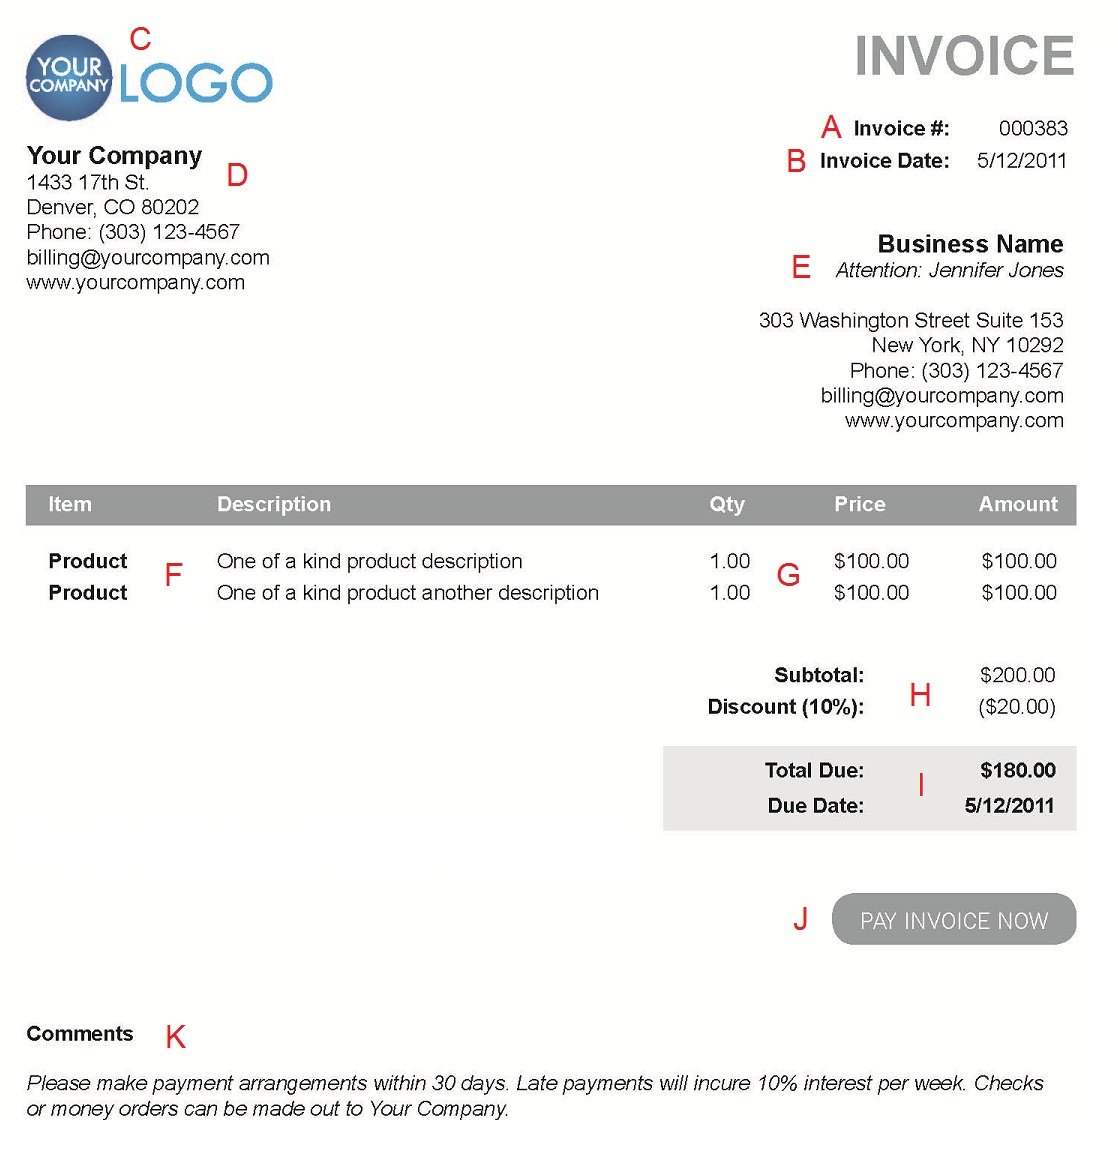 Ultrablogus  Fascinating The  Different Sections Of An Electronic Payment Invoice With Entrancing A  With Endearing Vehicle Purchase Receipt Template Also Donation Receipt Format In Addition Rent Receipt Template Microsoft Word And Scone Receipt As Well As Form For Receipt Of Payment Additionally Dental Receipt Sample From Paysimplecom With Ultrablogus  Entrancing The  Different Sections Of An Electronic Payment Invoice With Endearing A  And Fascinating Vehicle Purchase Receipt Template Also Donation Receipt Format In Addition Rent Receipt Template Microsoft Word From Paysimplecom